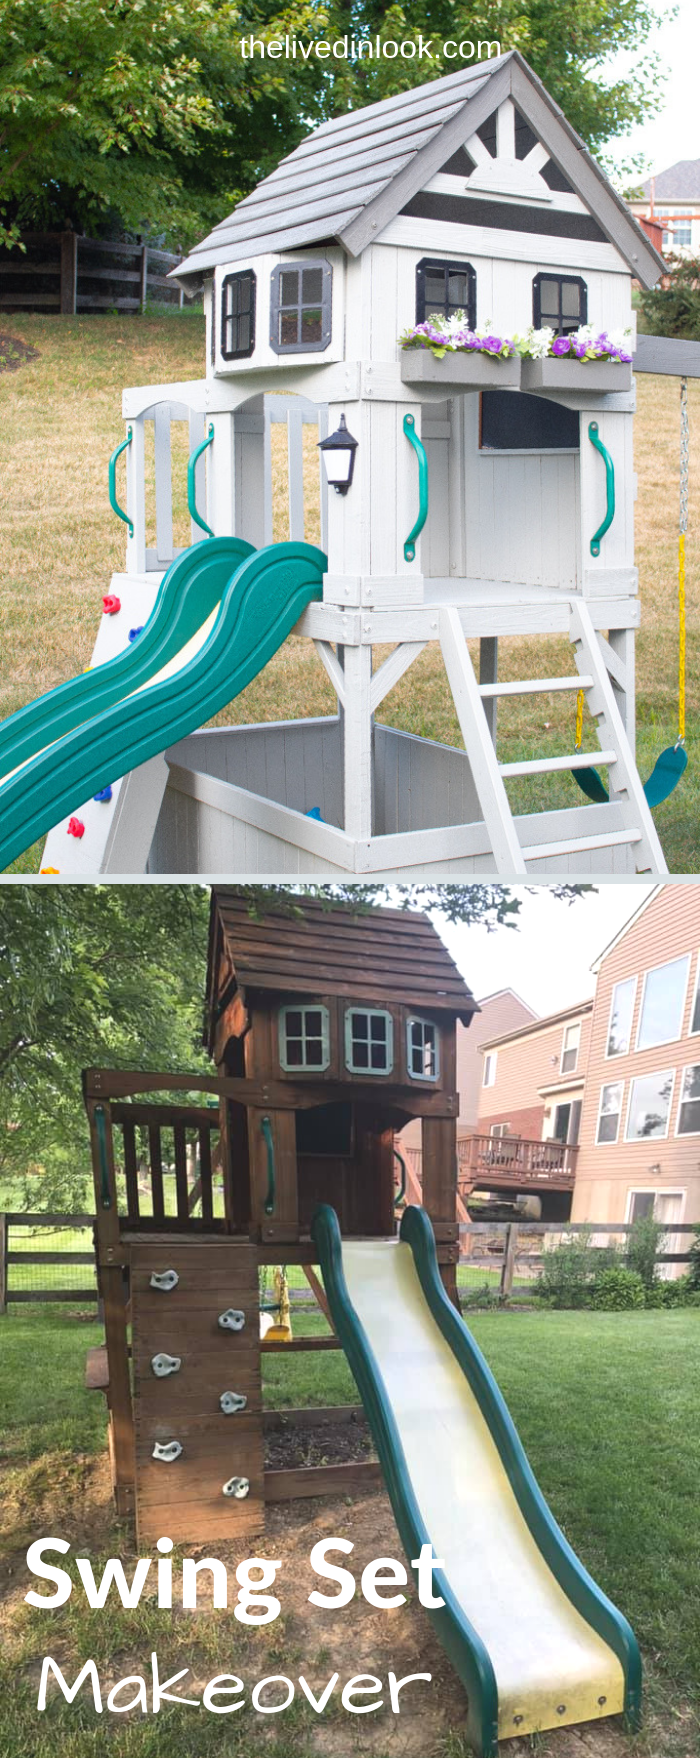 Our Swing Set Makeover: How to Make Old Look New Again ...